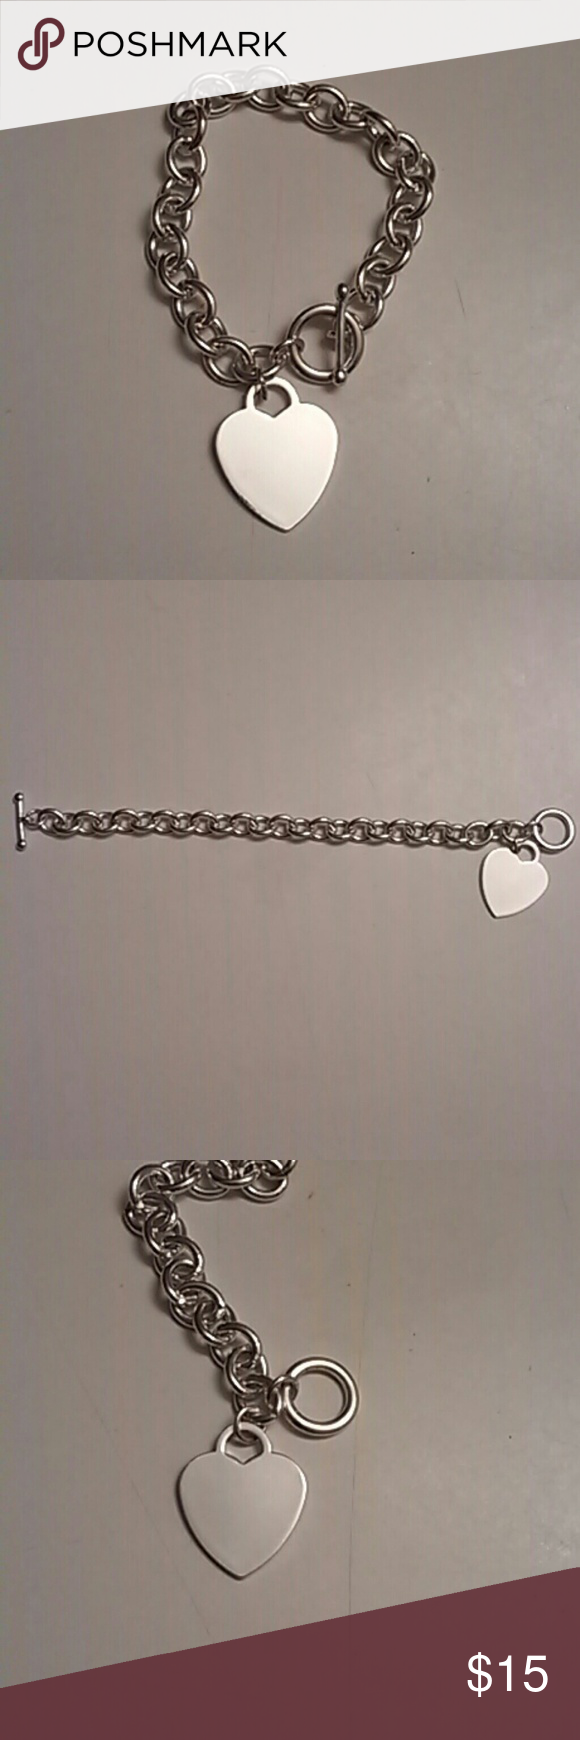 Silver heart charm bracelet silver heart charm bracelet simple and